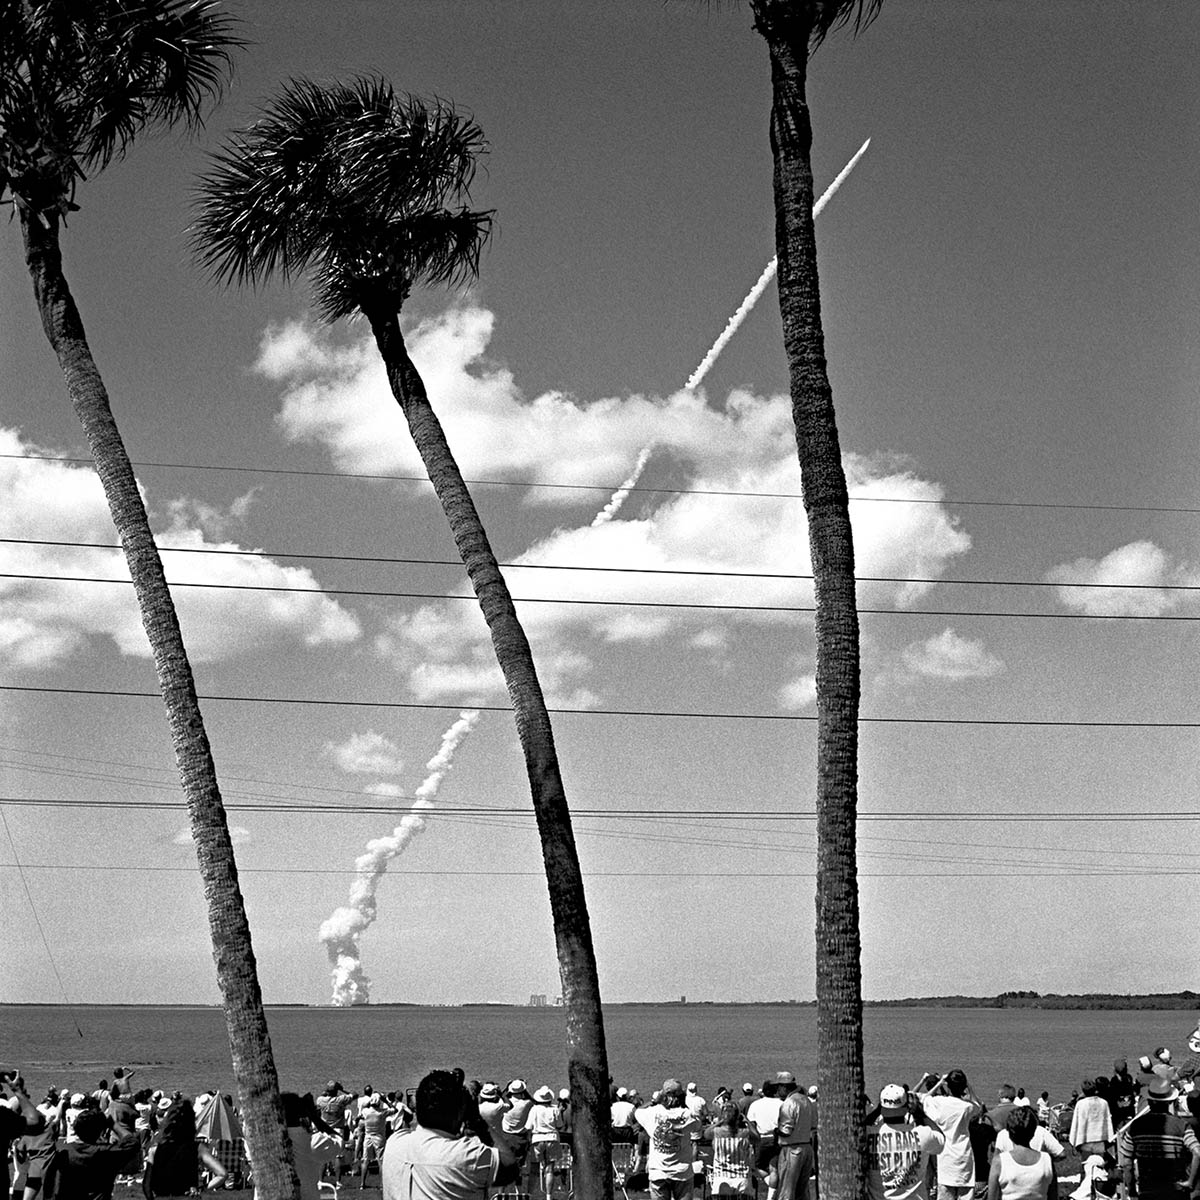 Launch of Columbia Shuttle, Cape Canaveral, Florida, 1998